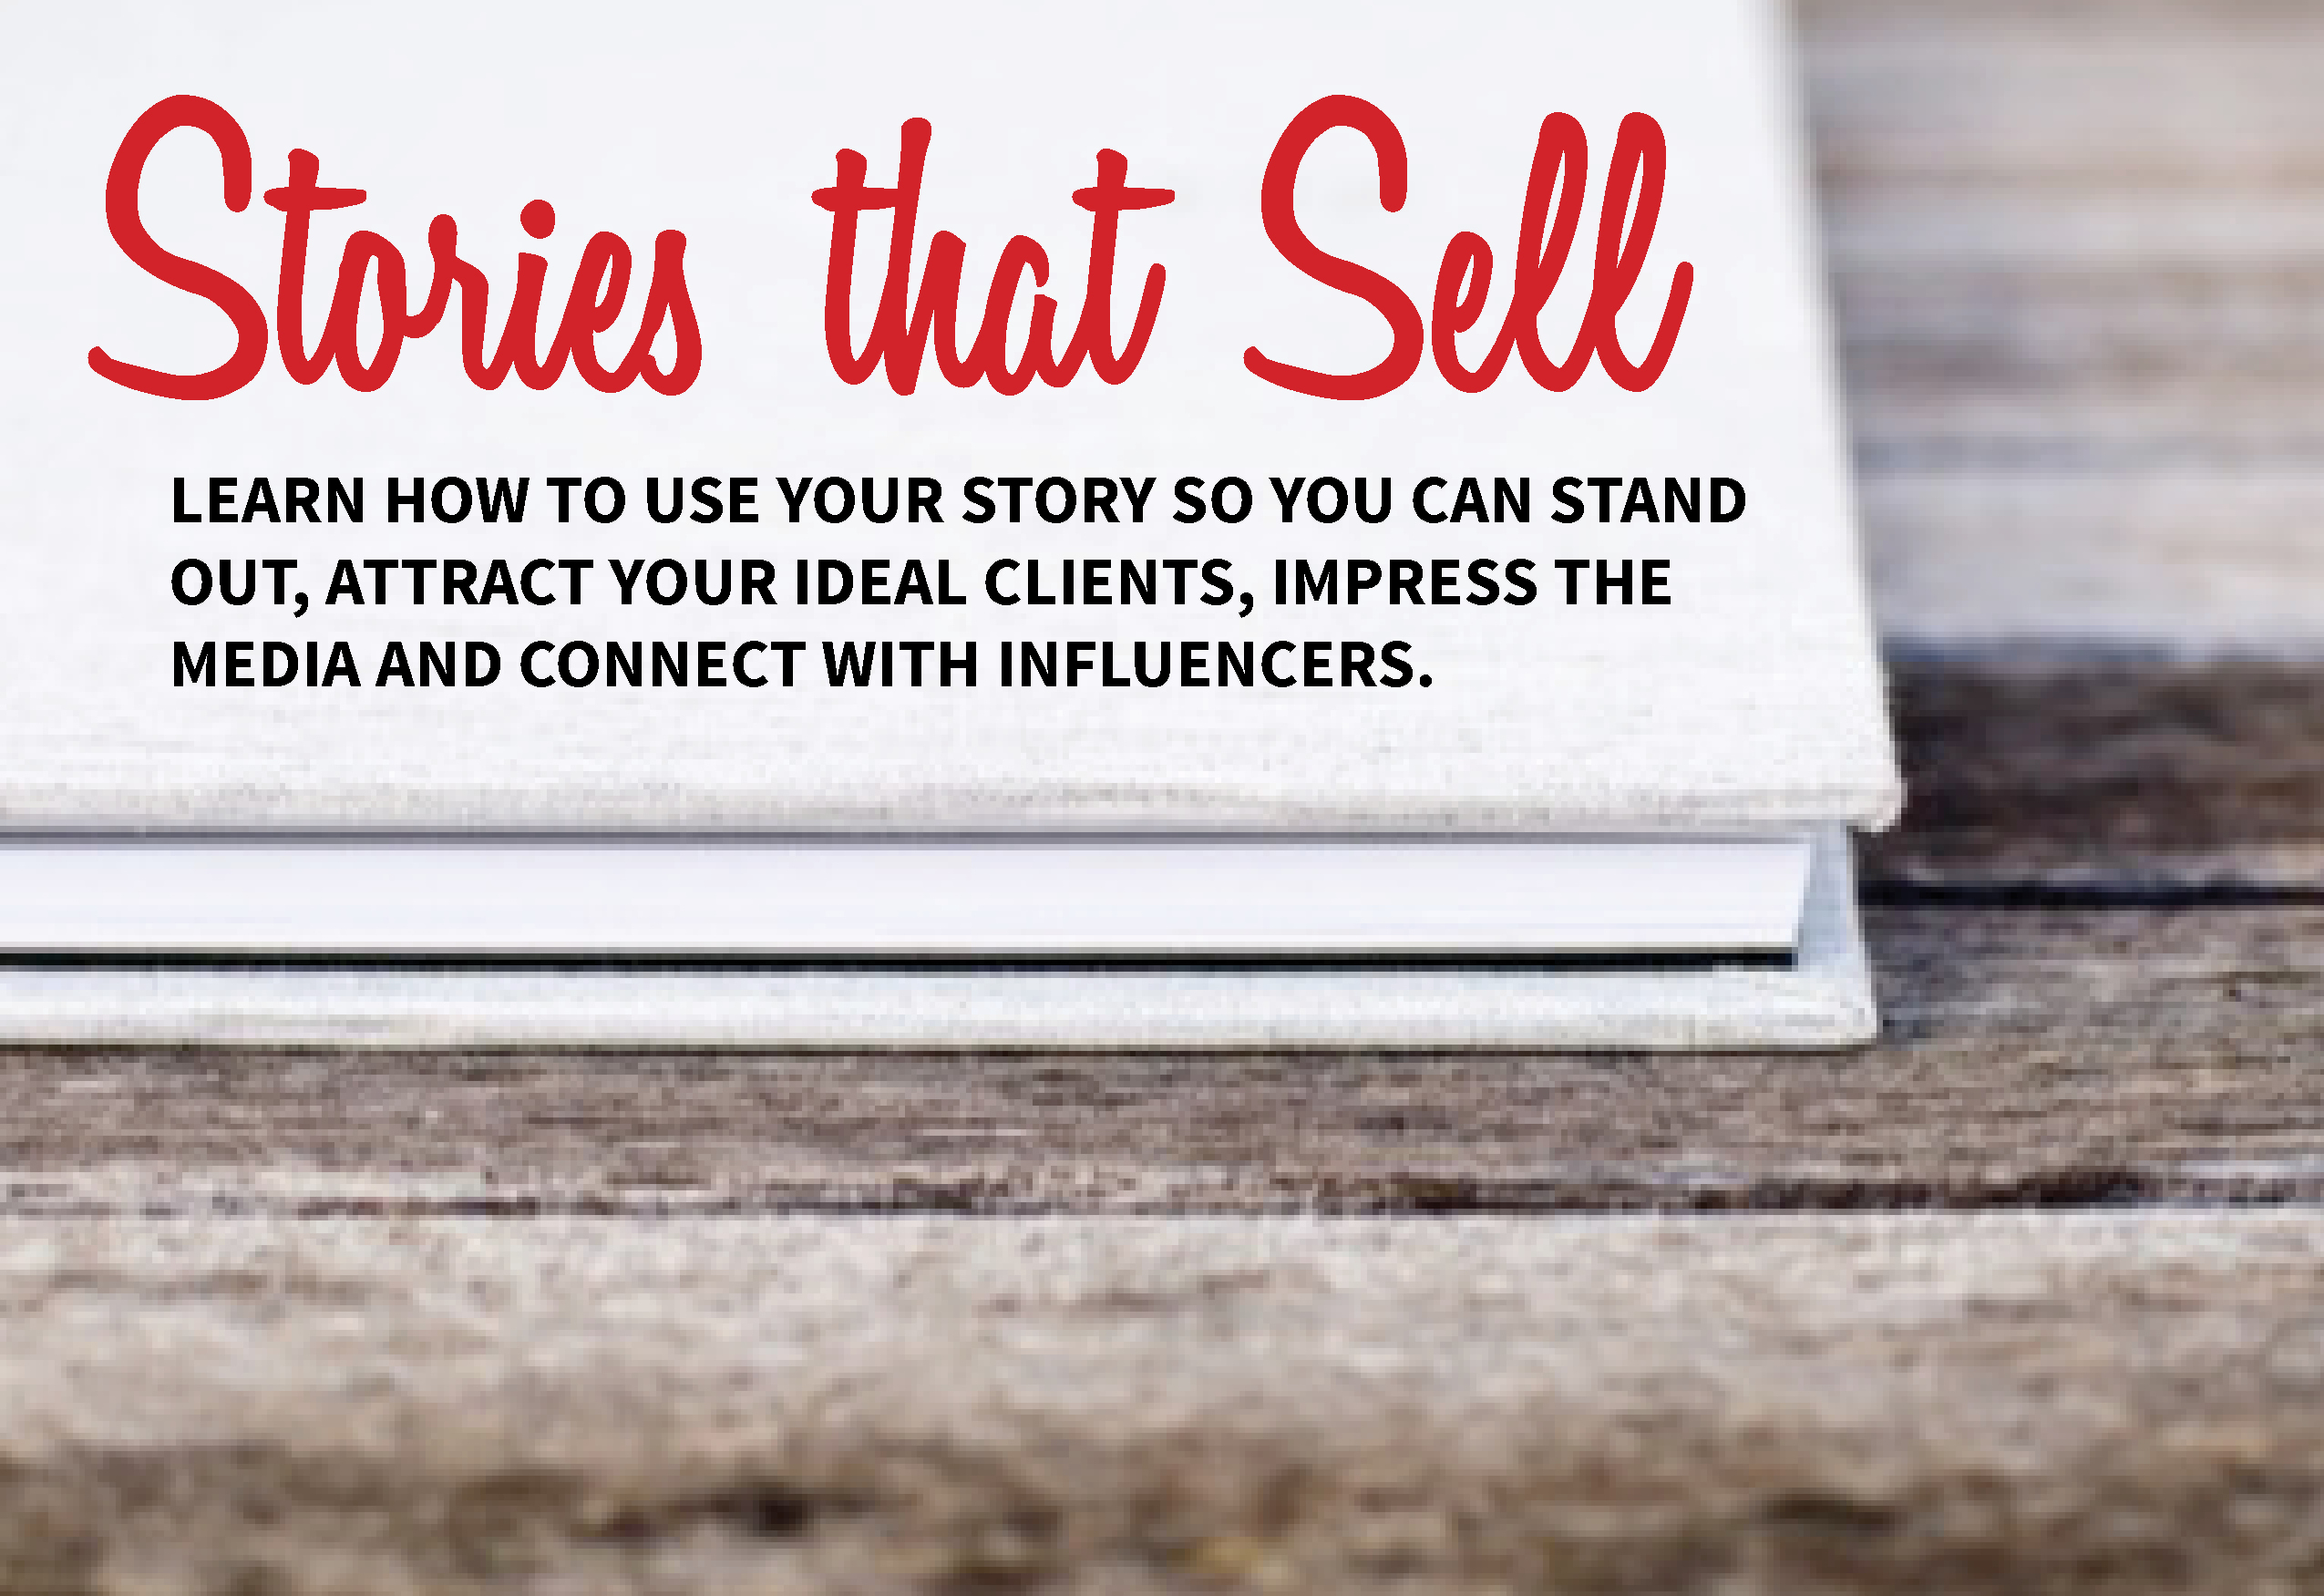 Stories That Sell